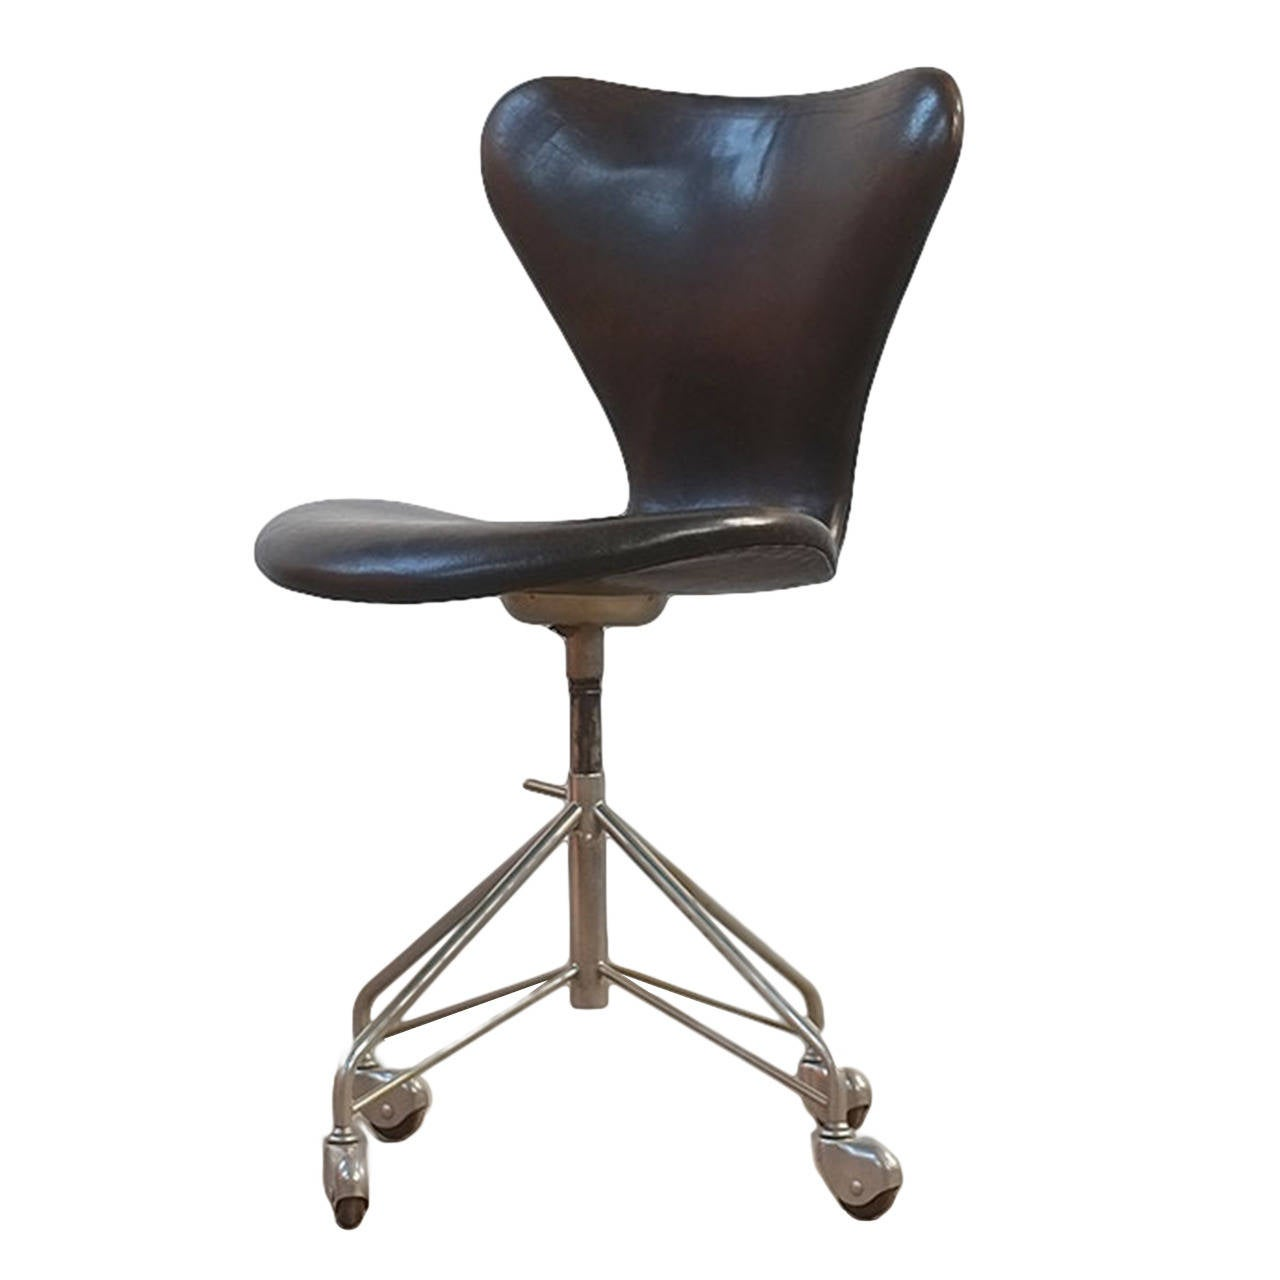 Arne jacobsen desk chair at 1stdibs for Arne jacobsen chaise